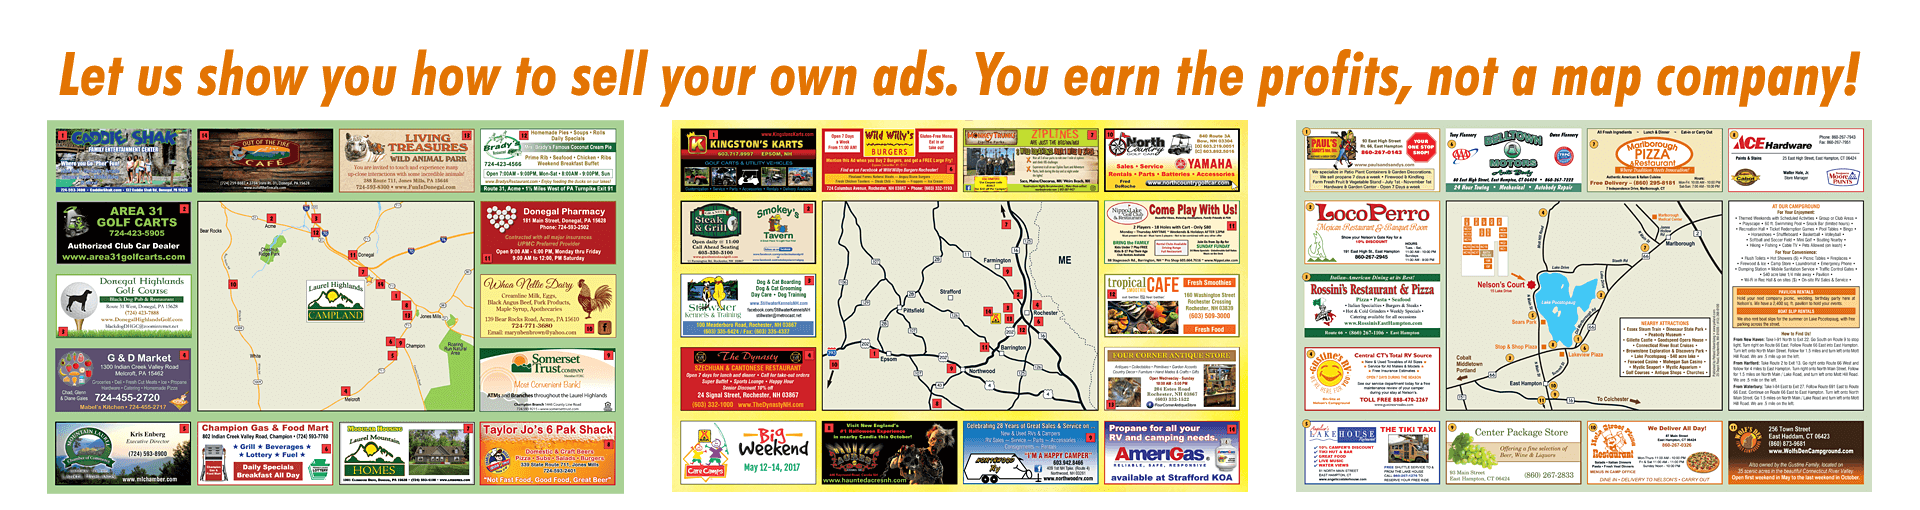 Sell your own ad site maps